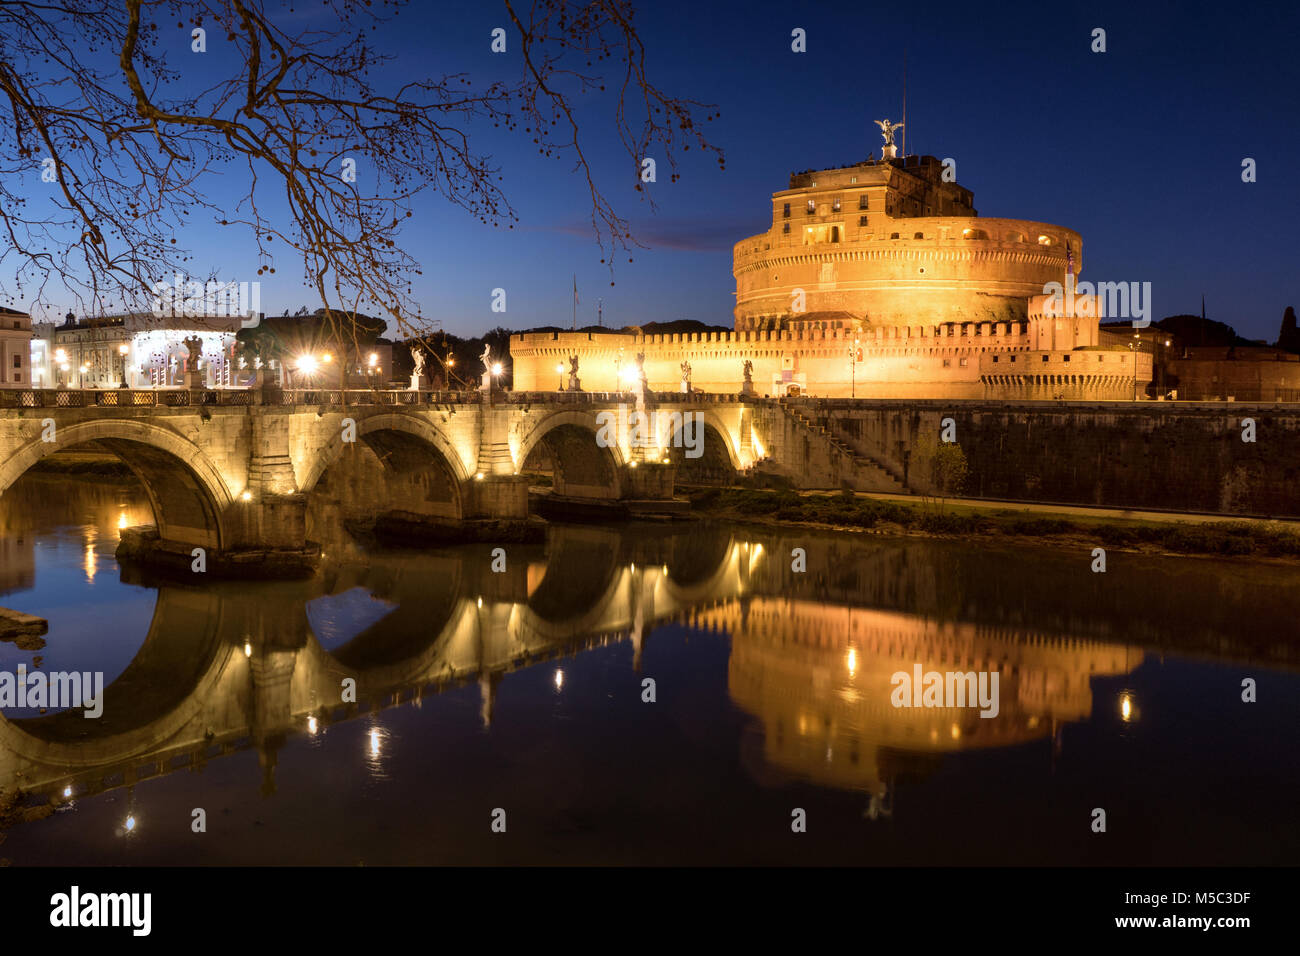 Rome Sant' Angelo Castle by night - Stock Image